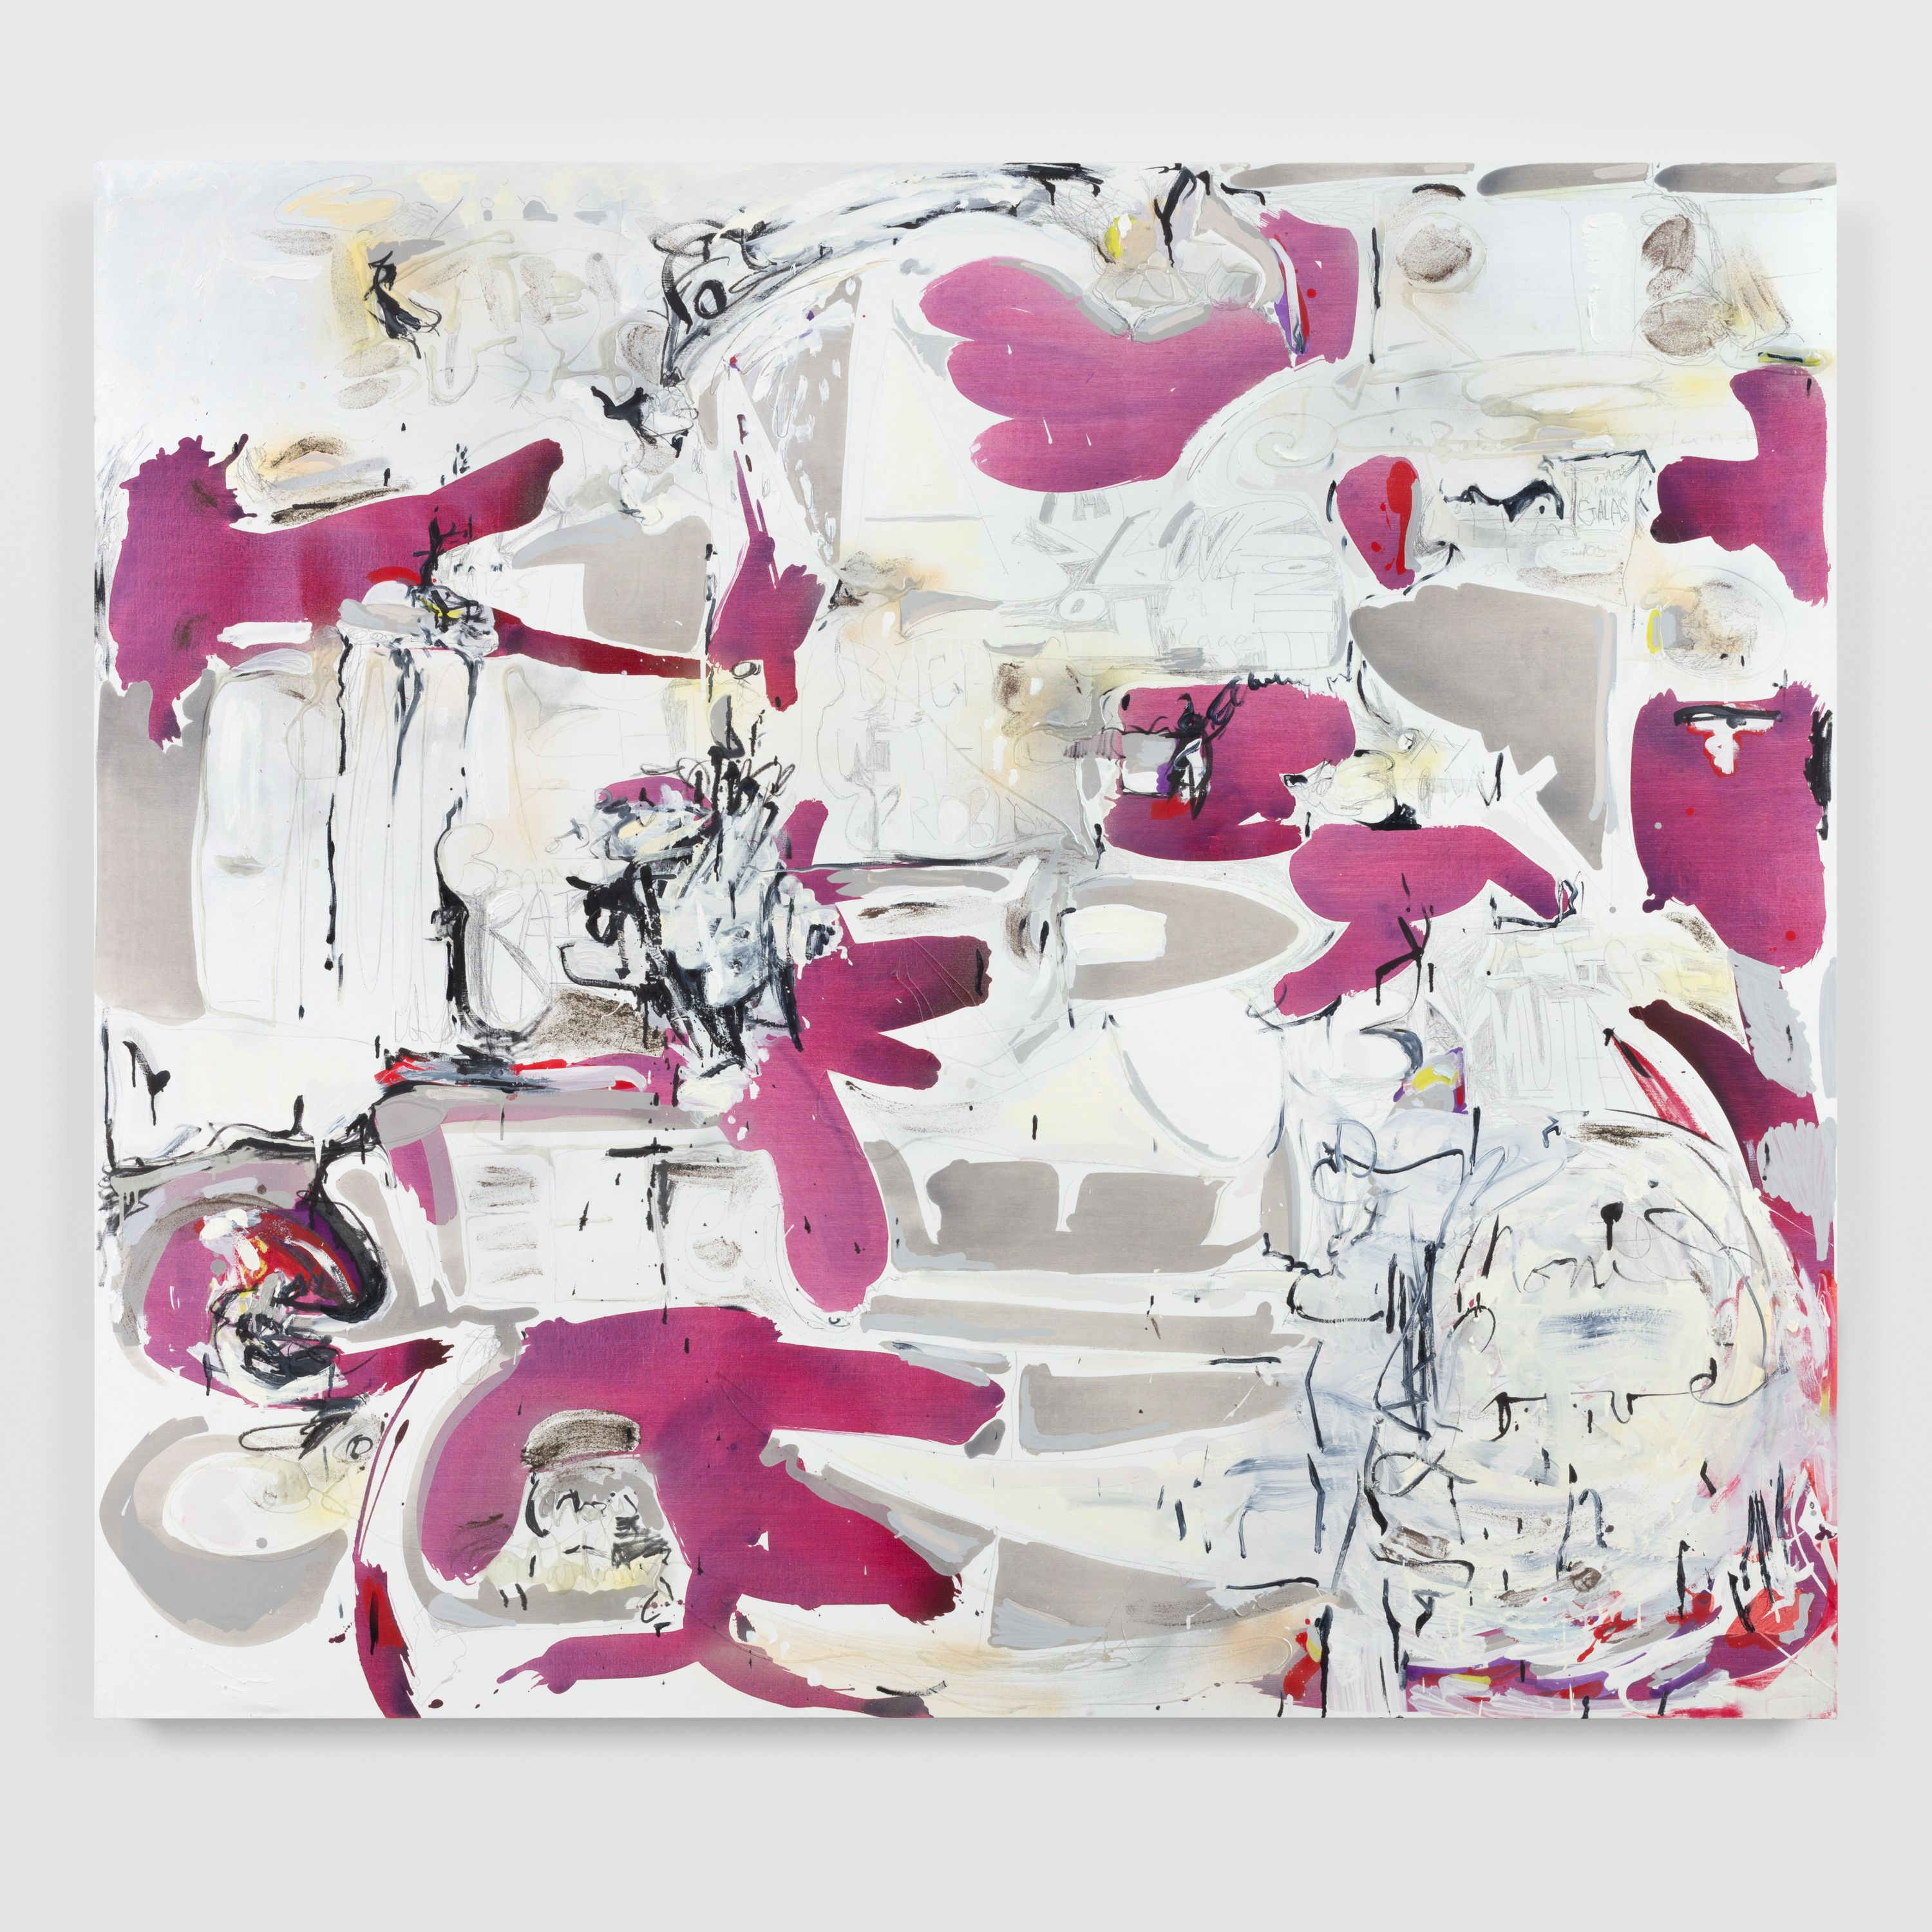 Suzanne McClelland, PLAYLIST in black and white with REDS, 2021 Marianne Boesky